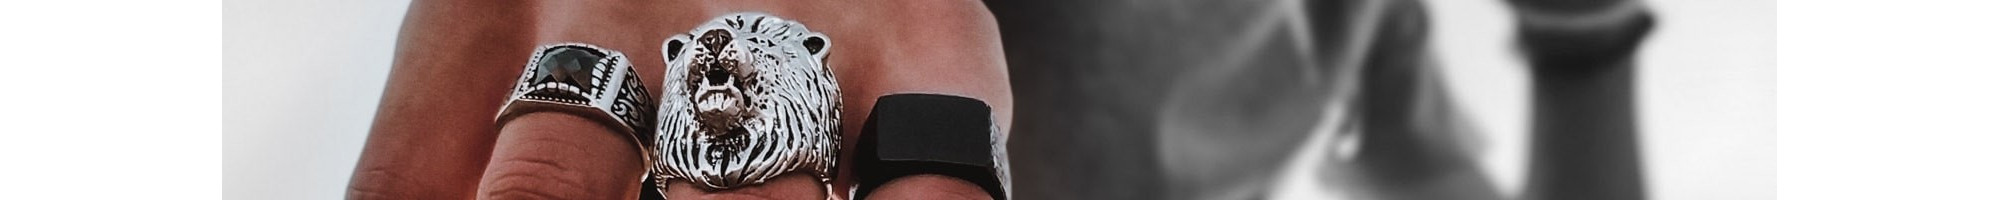 Men's rings | Discover exclusive masculine designs online at BIJOU BOX